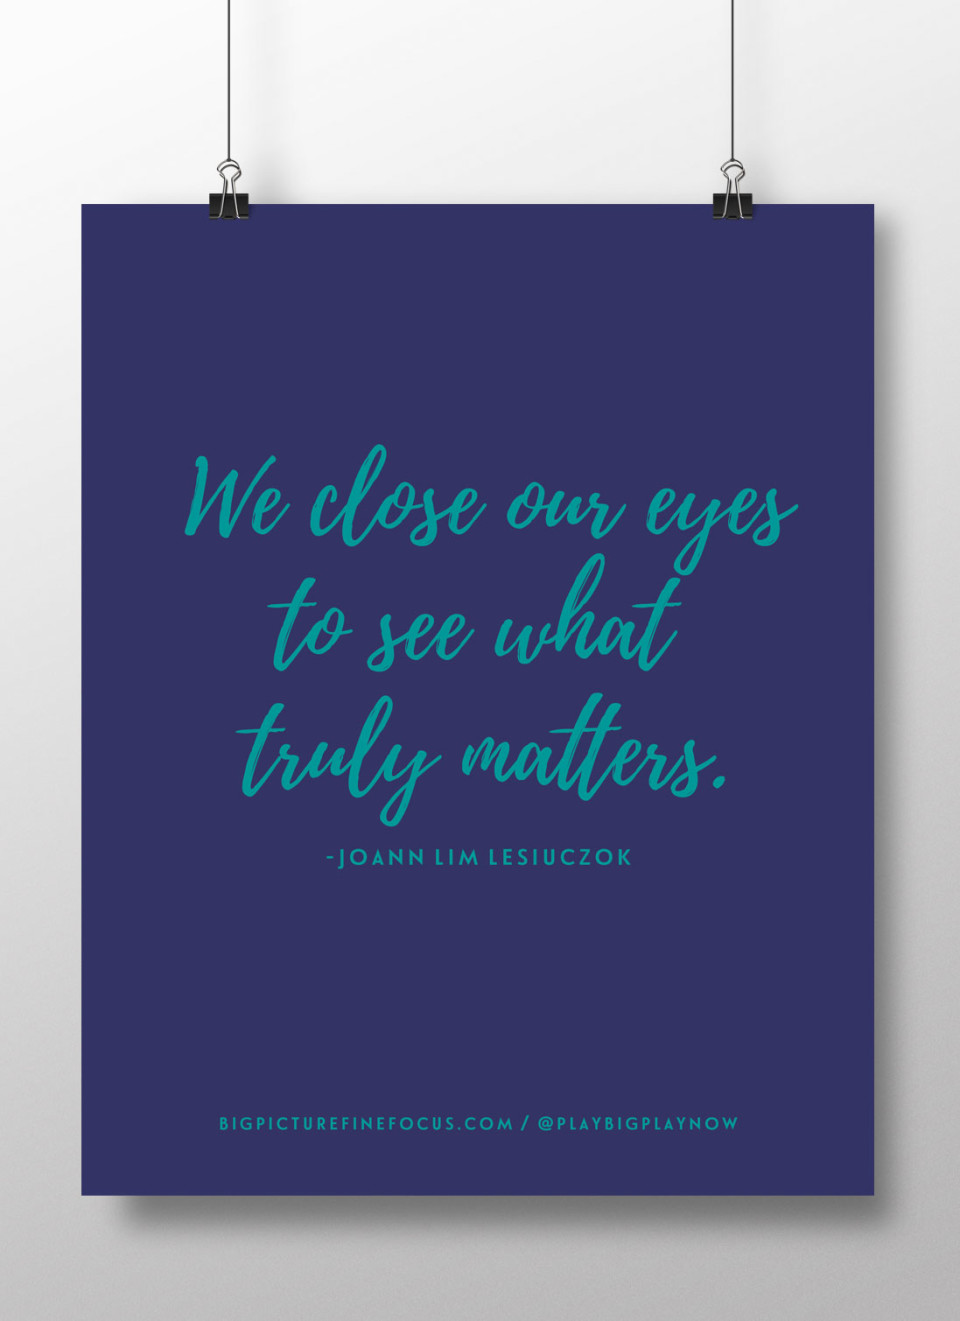 We-close-our-eyes-to-see-what-truly-matters